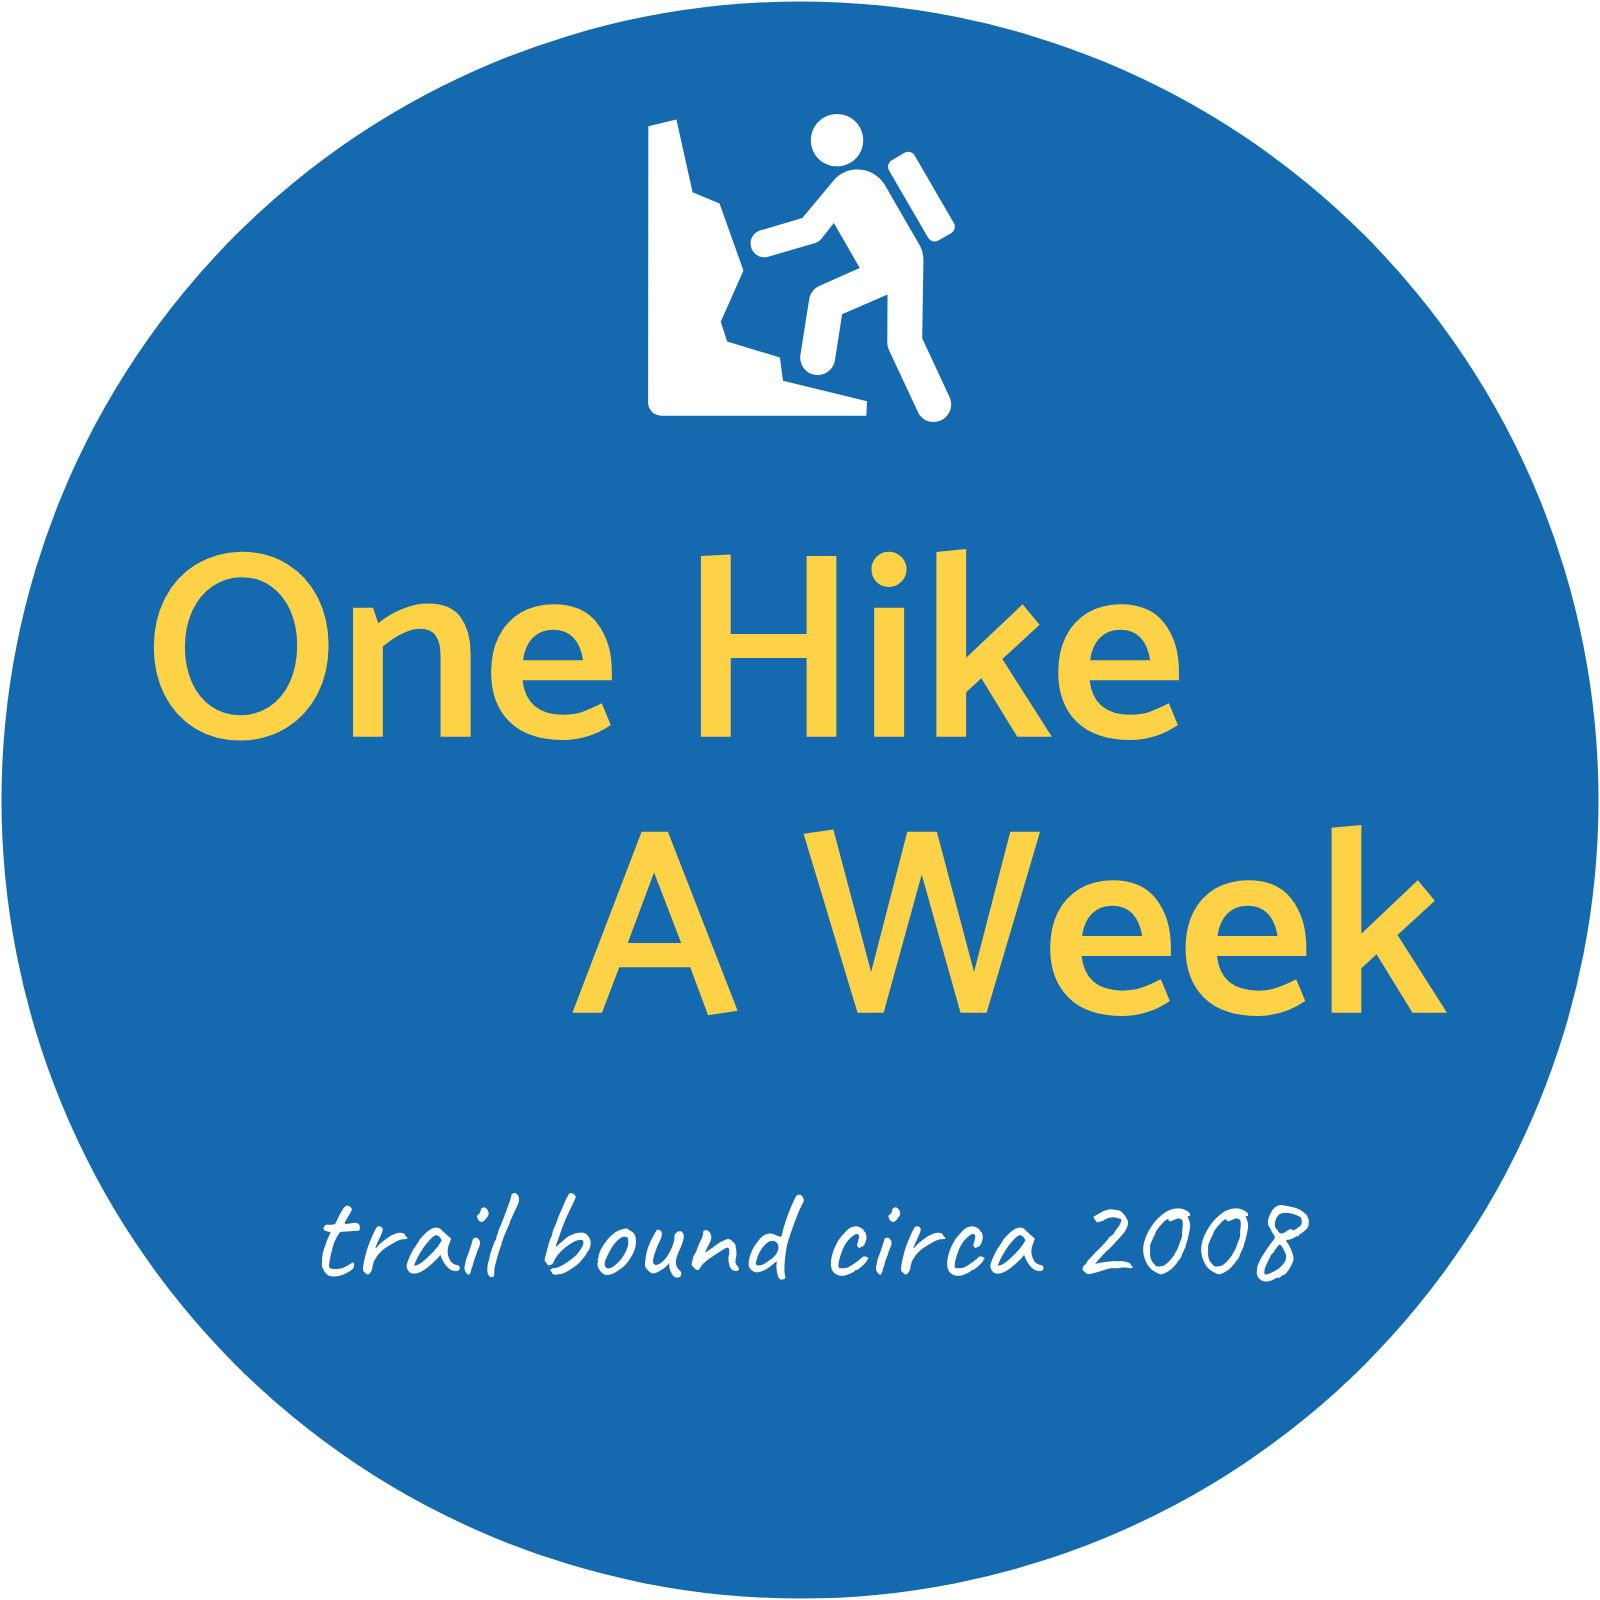 One Hike A Week logo